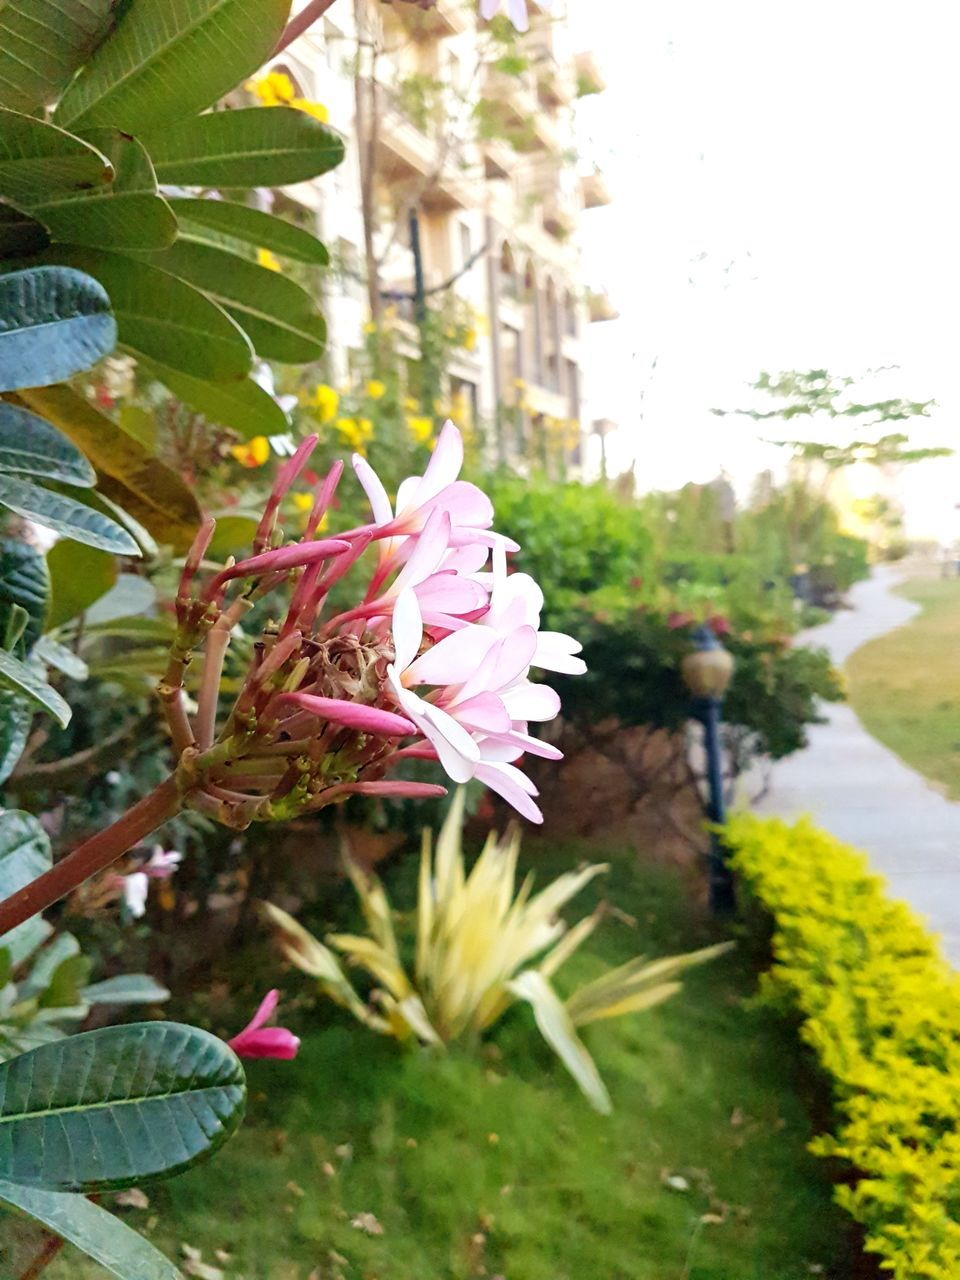 flower, nature, growth, beauty in nature, petal, fragility, freshness, plant, day, outdoors, flower head, focus on foreground, leaf, green color, no people, tree, pink color, blooming, close-up